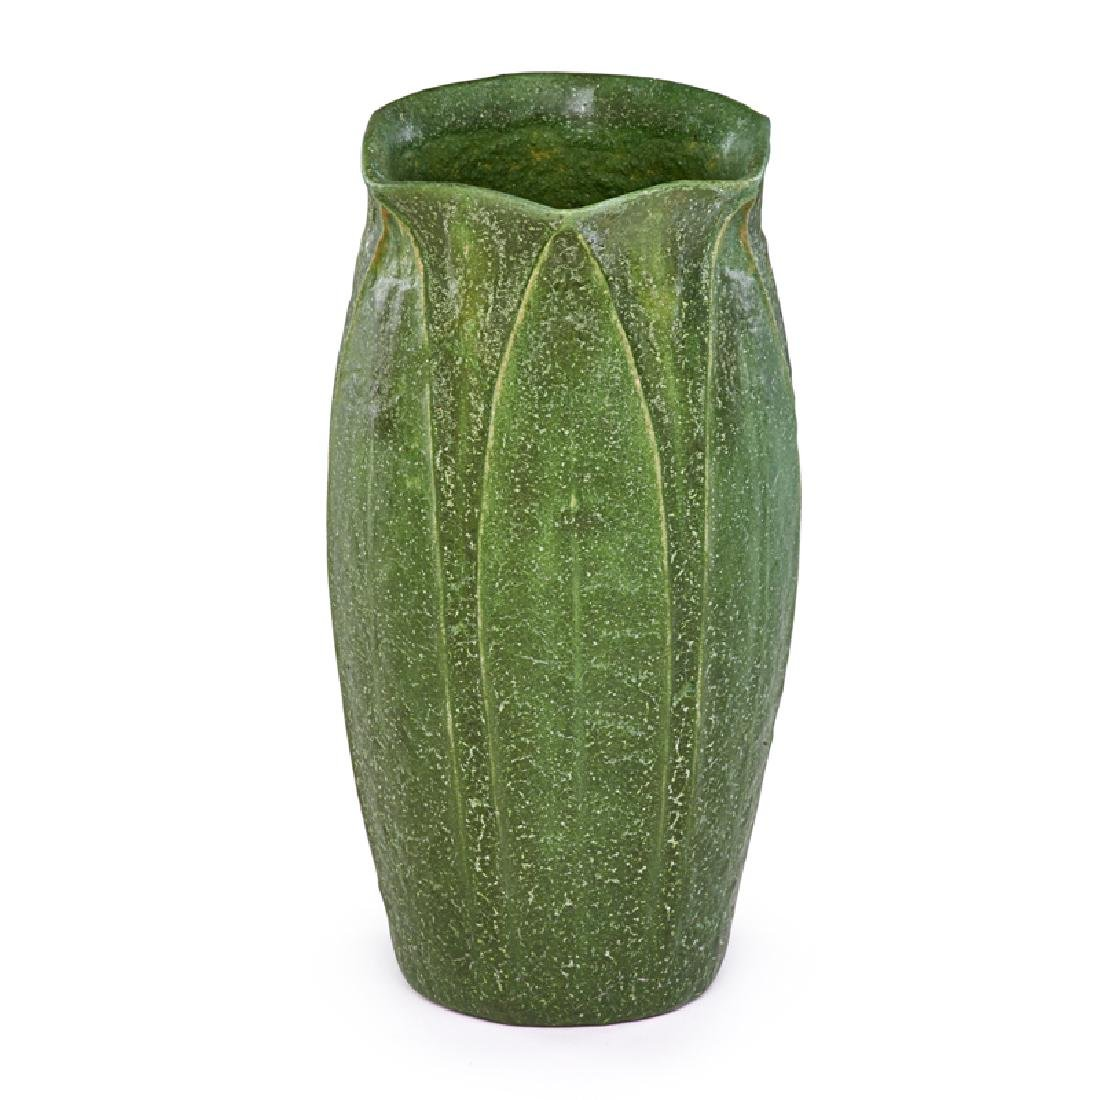 W. POST; GRUEBY Vase with leaves and buds